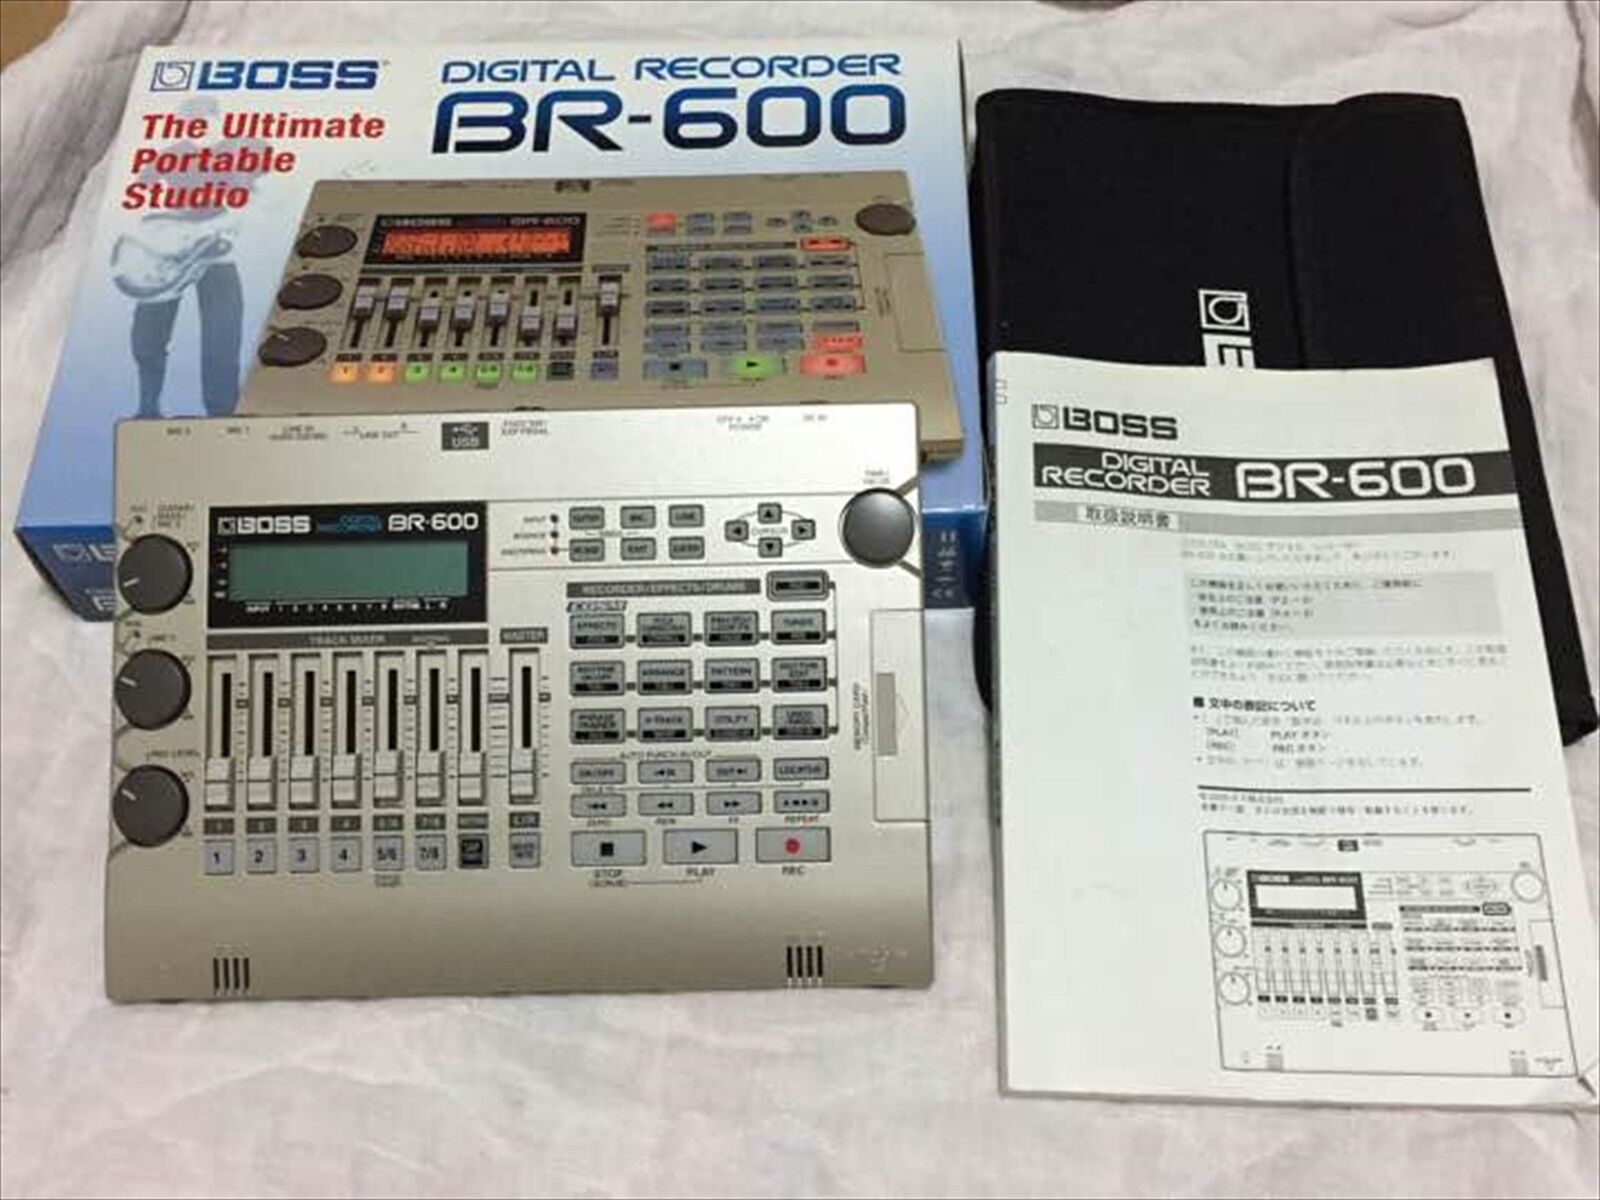 Used Roland BOSS DIGITAL RECORDER BR-600 with Box Manual Soft case from JAPAN